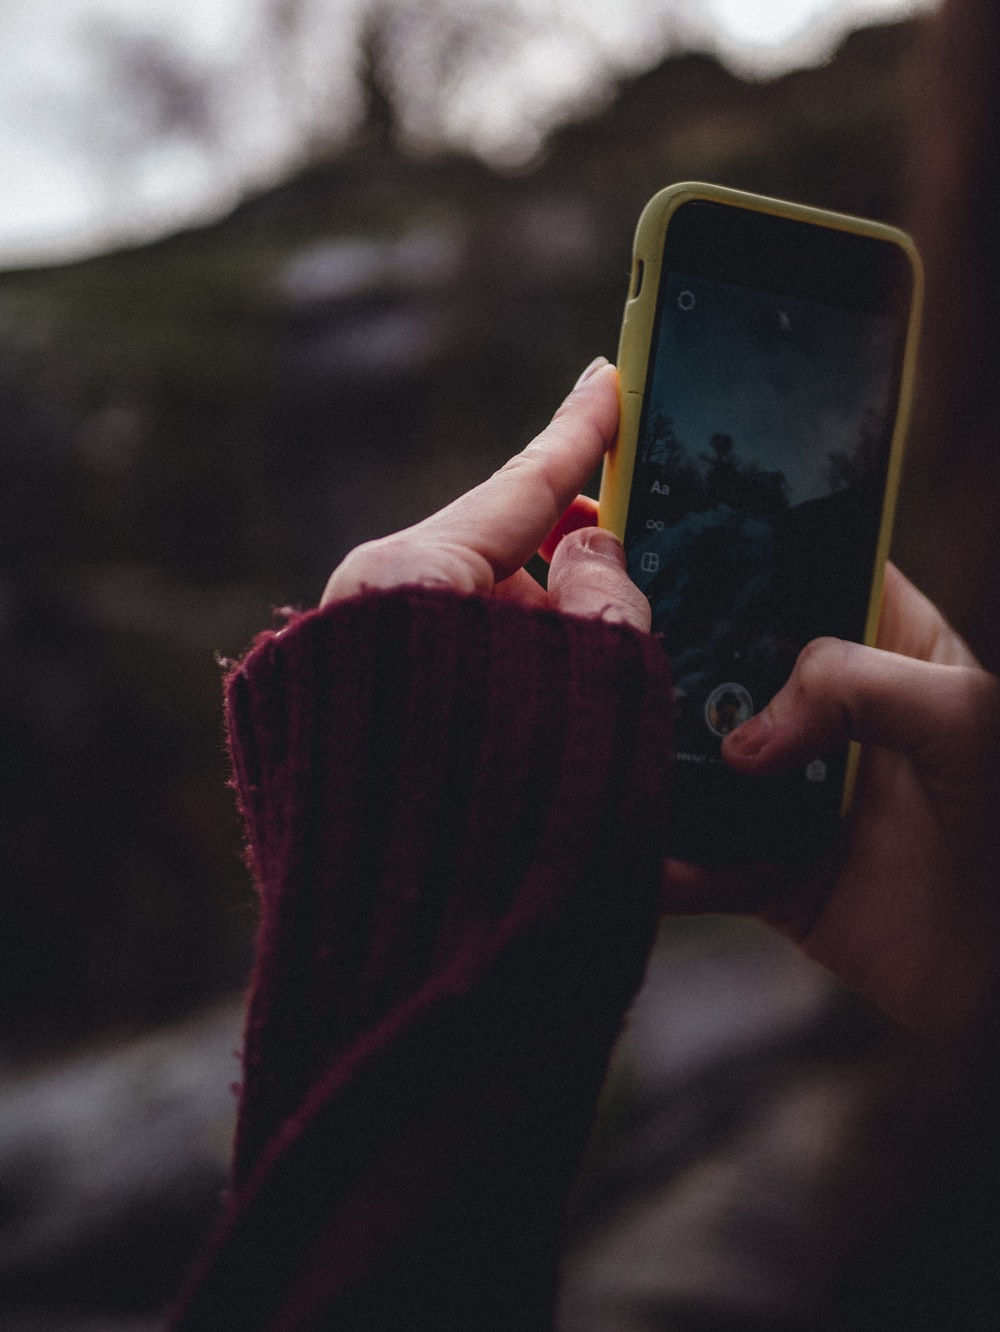 person holding yellow iphone 5 c